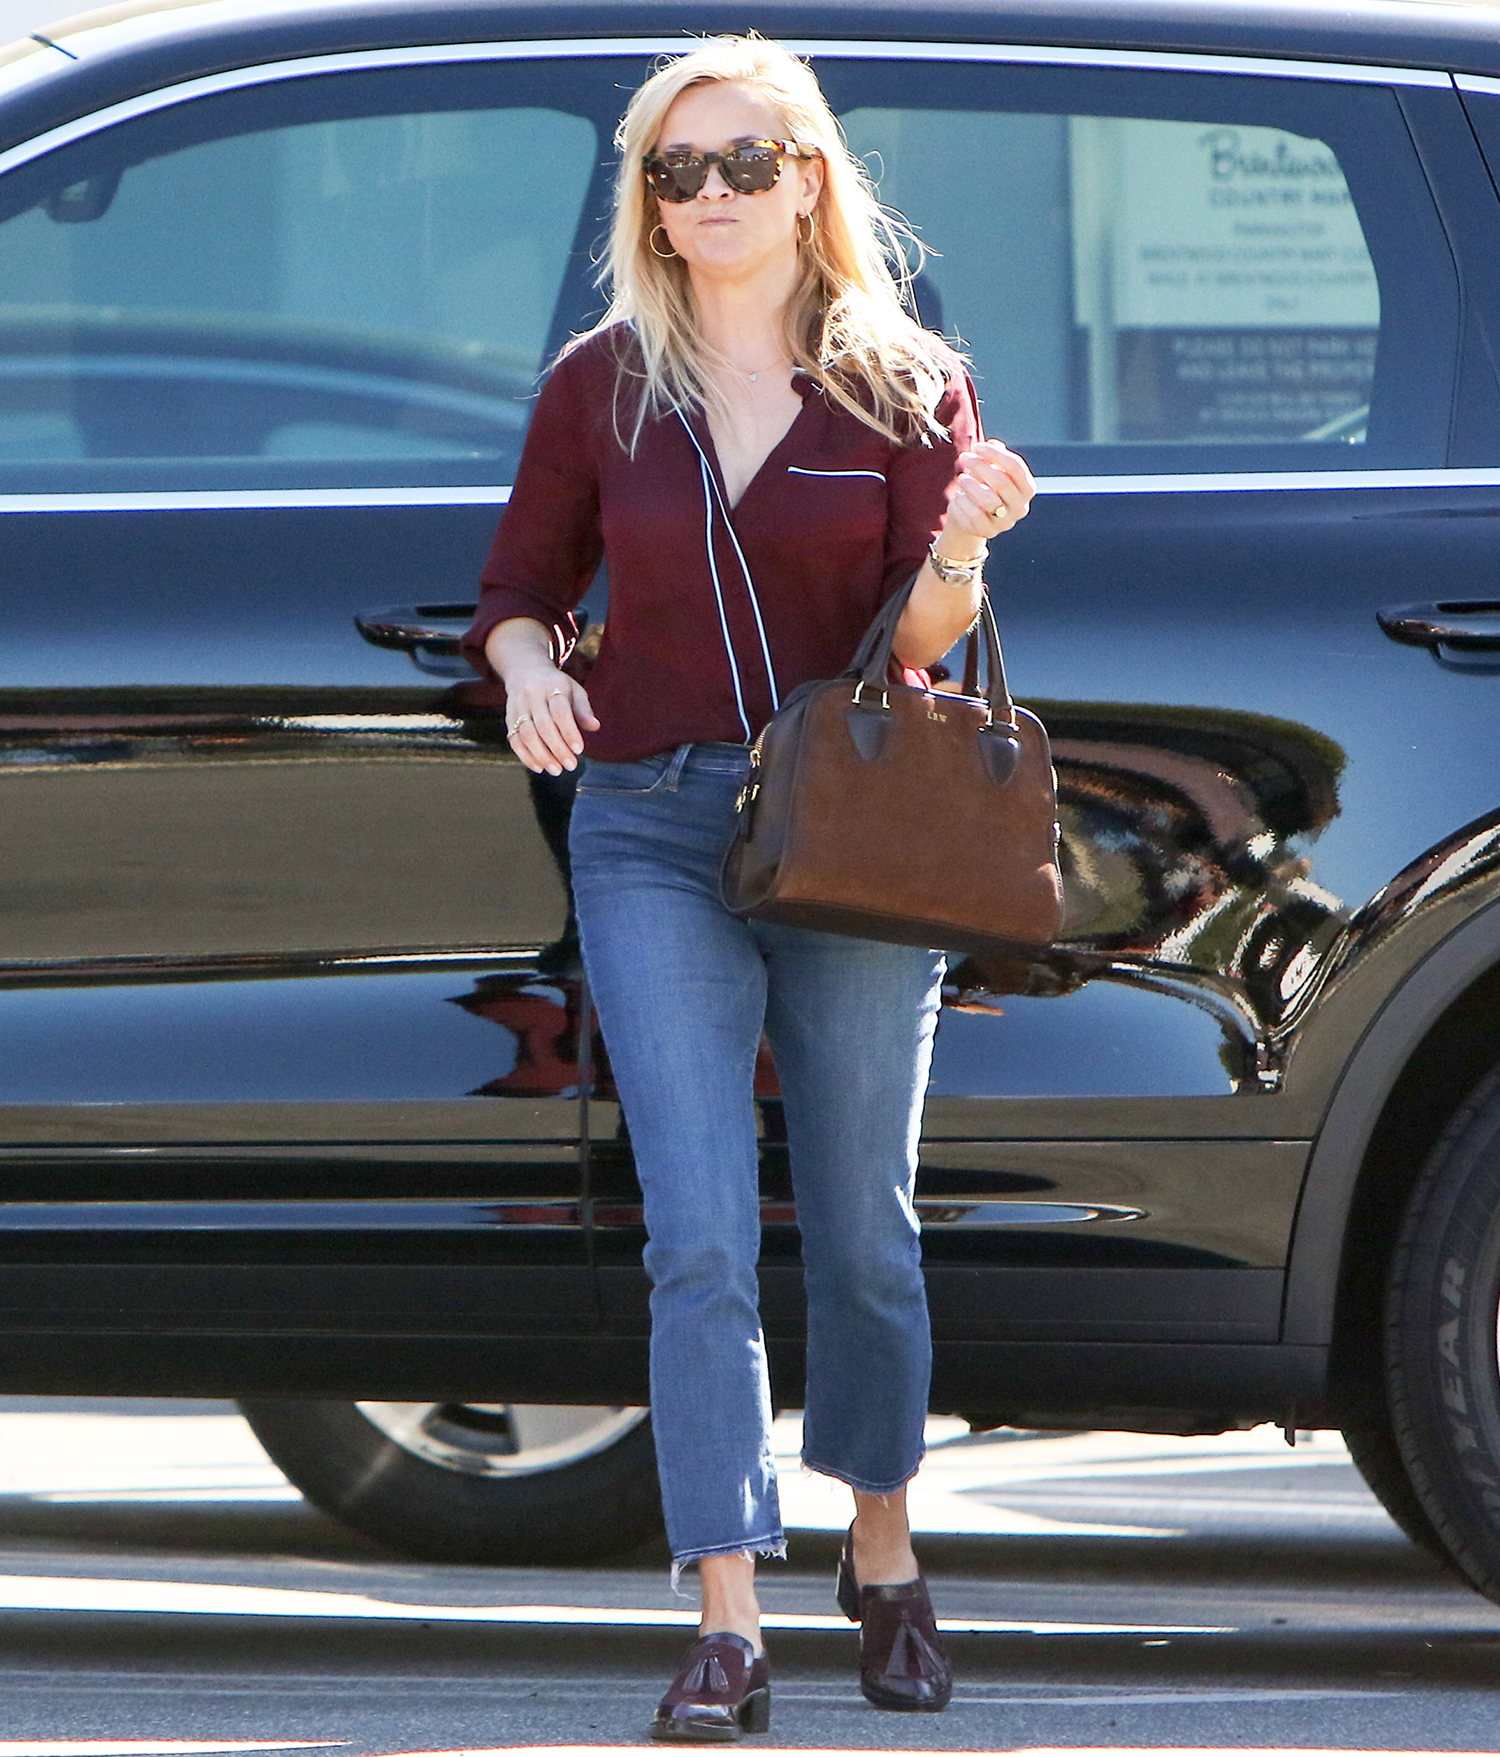 Reese Witherspoon is seen on October 20, 2016 in Los Angeles, California.